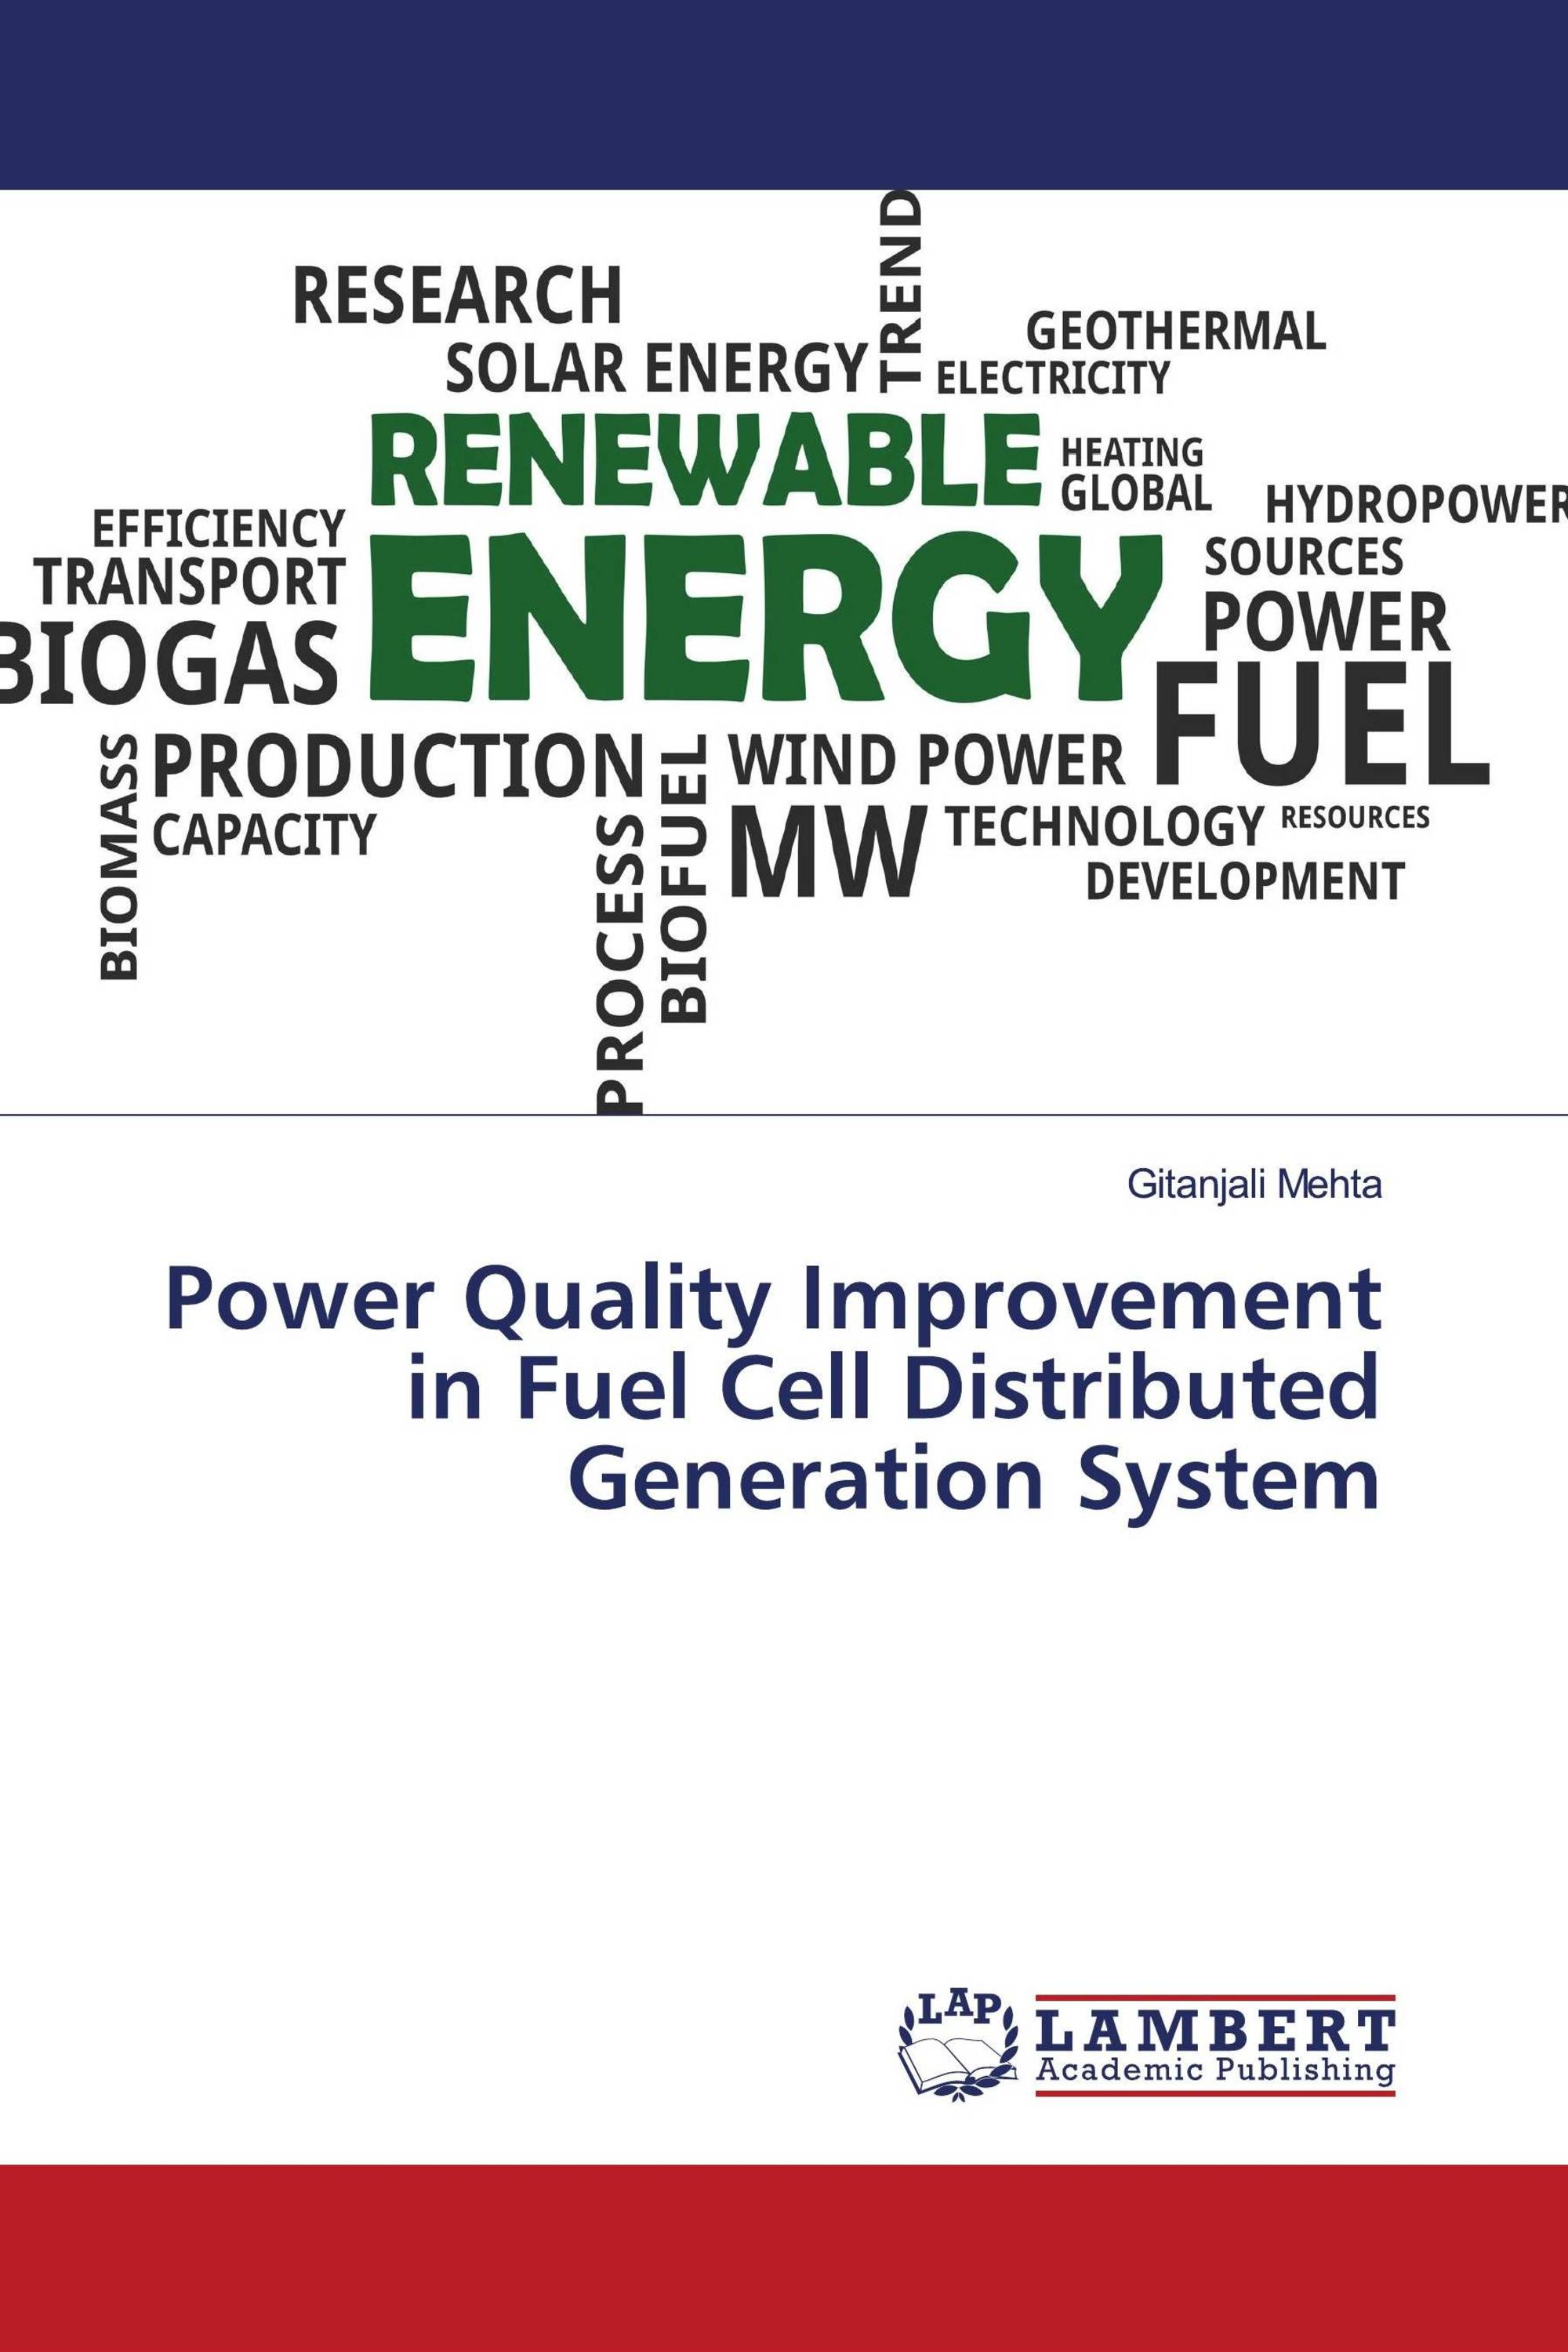 Power Quality Improvement in Fuel Cell Distributed